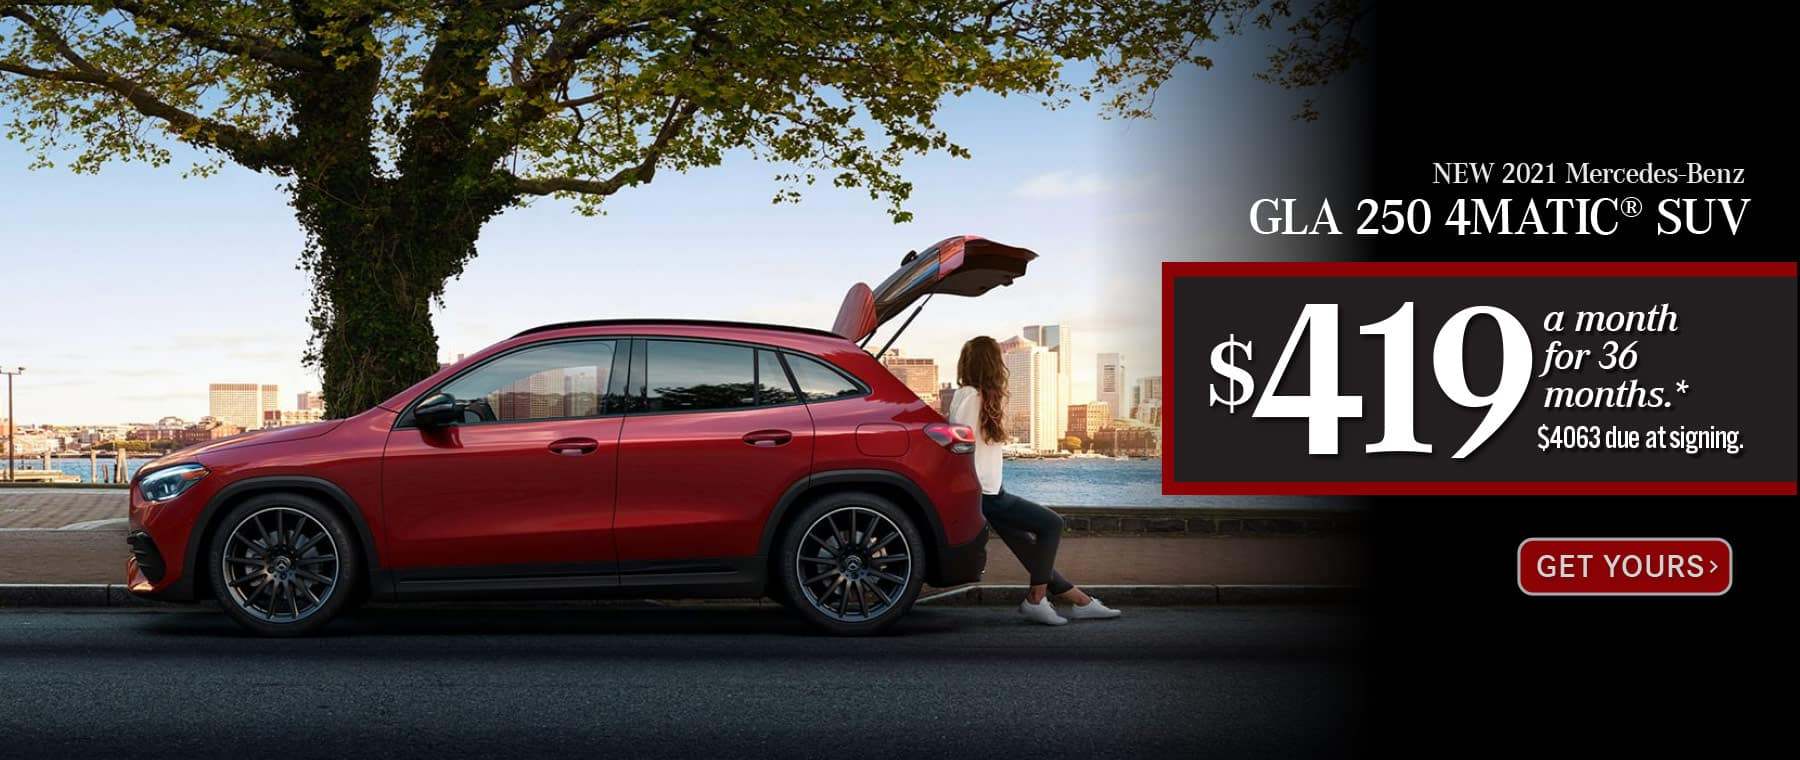 New 2021 Mercedes-Benz GLA 250 4MATIC® SUV-Lease for Only: $419 a month for 36 months. $4063 due at signing.